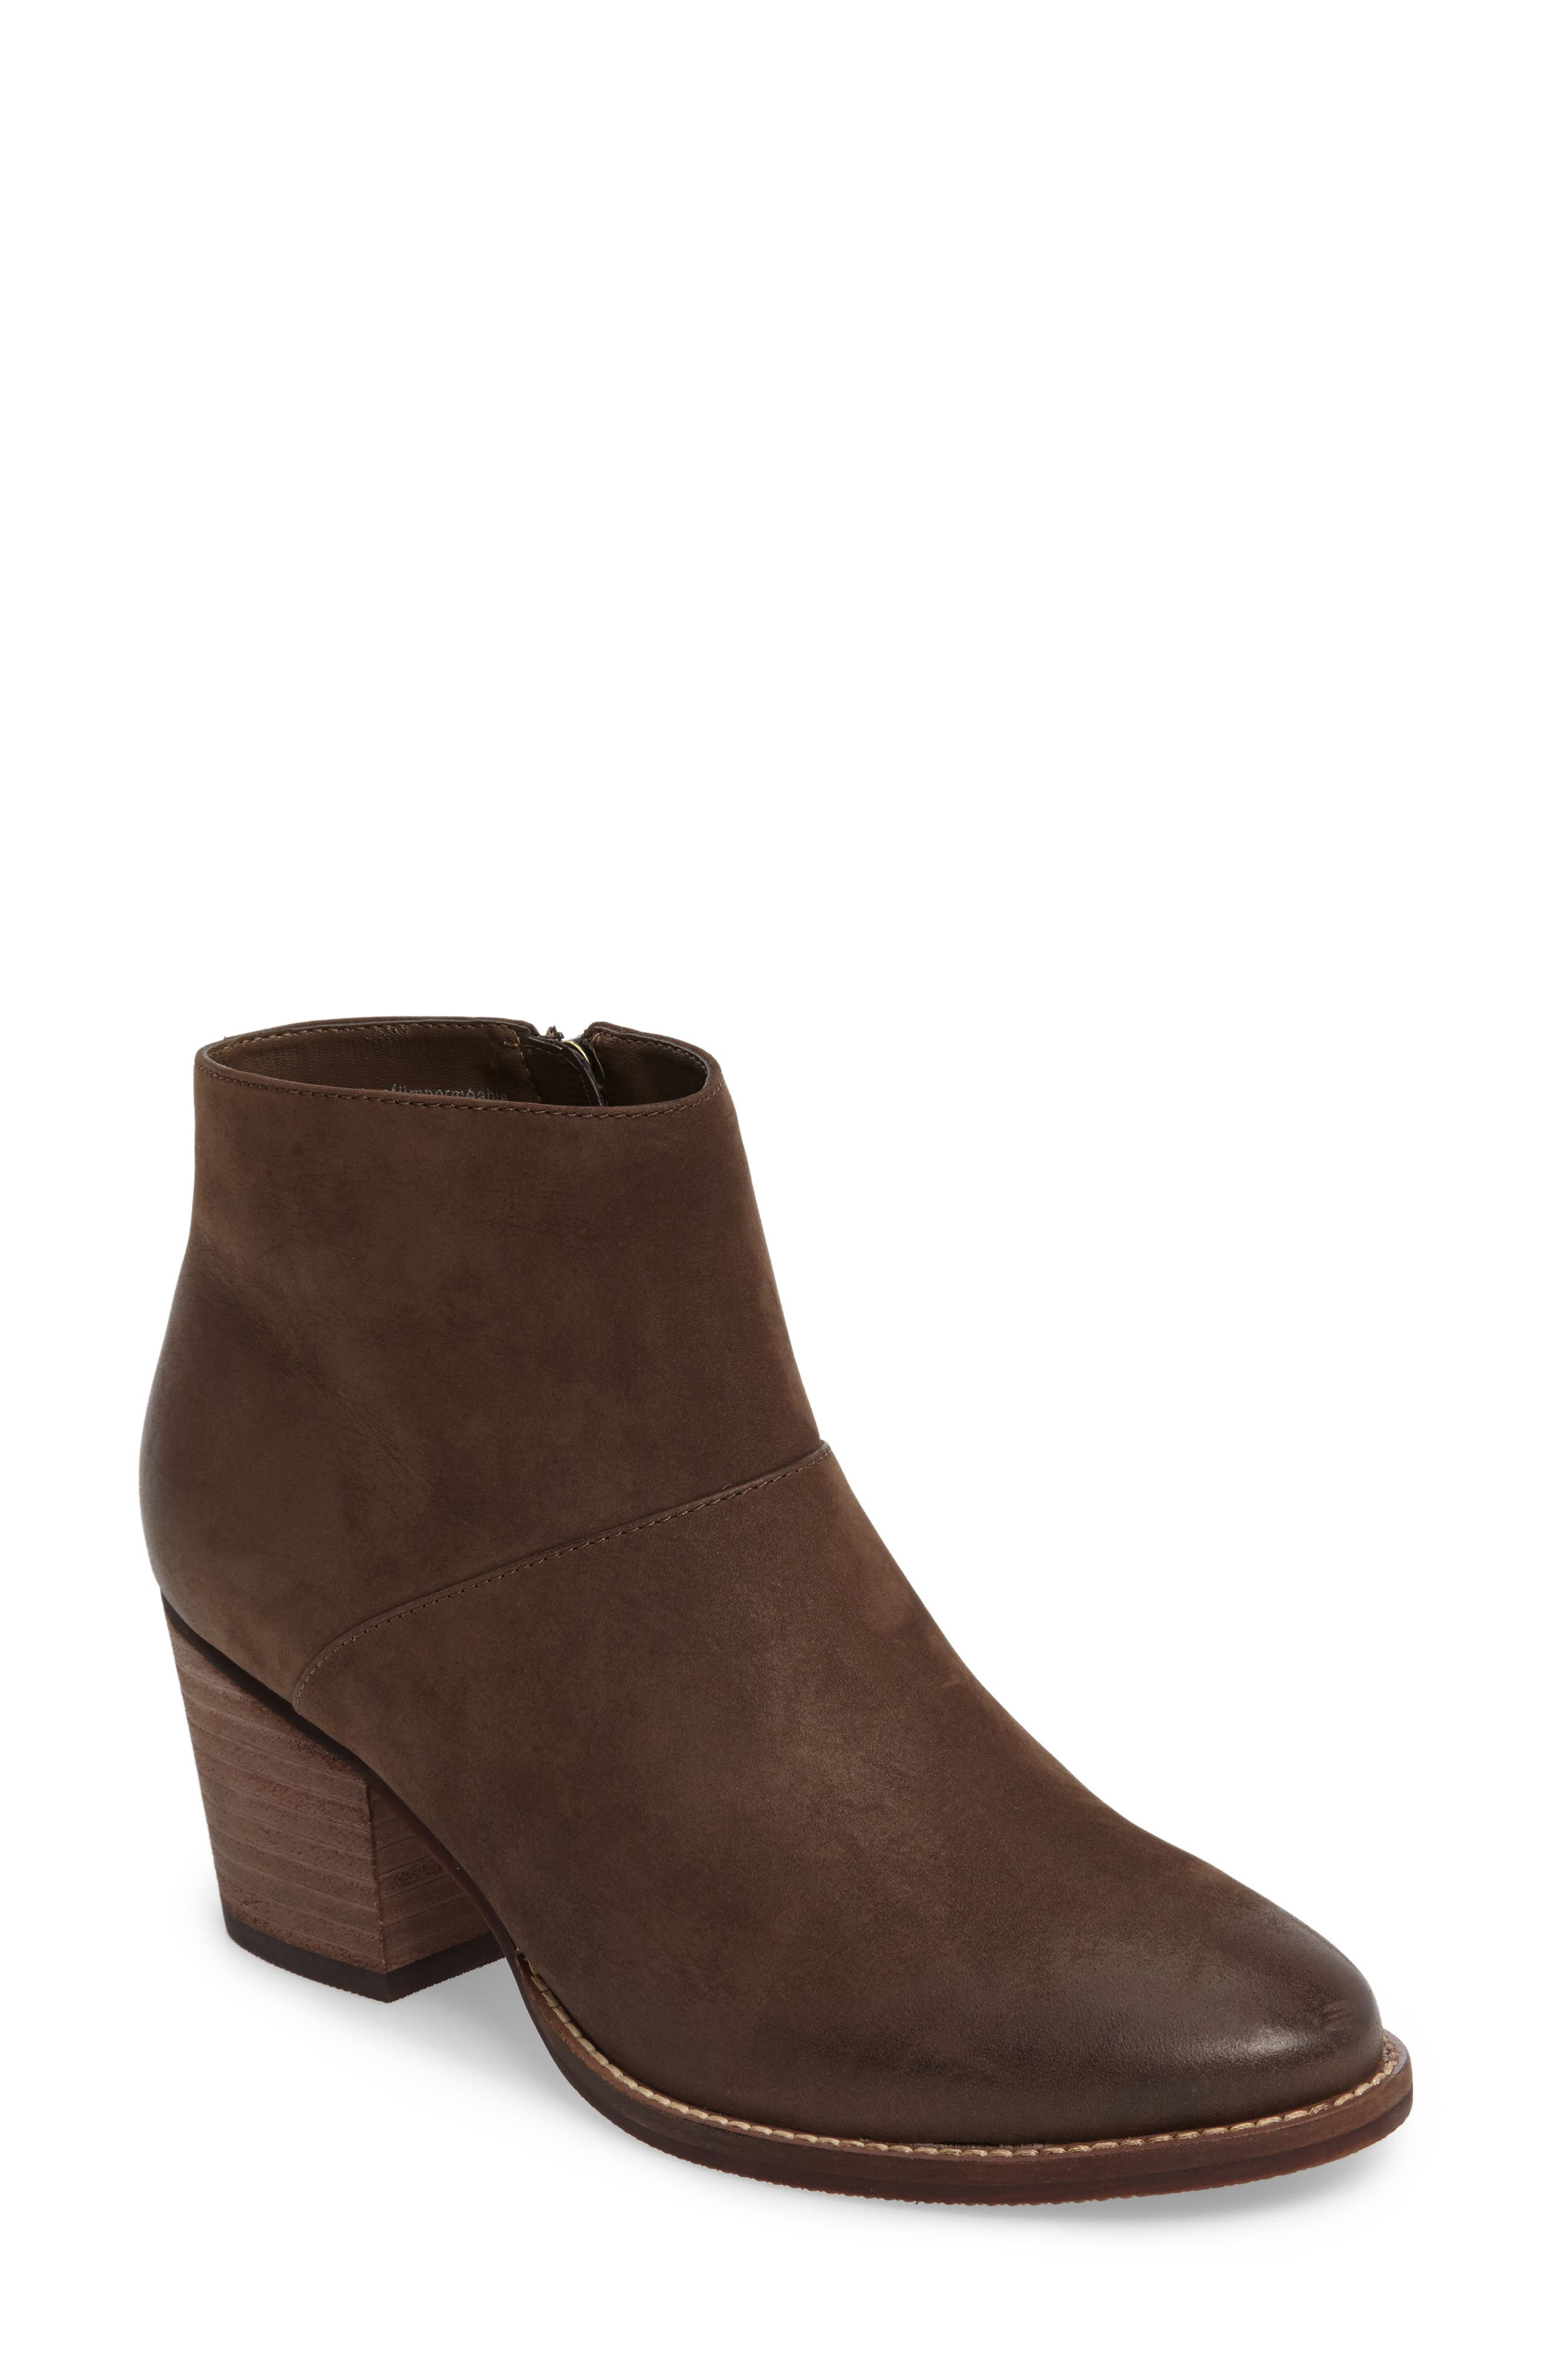 Nelli Waterproof Bootie,                             Main thumbnail 1, color,                             Taupe Nubuck Leather